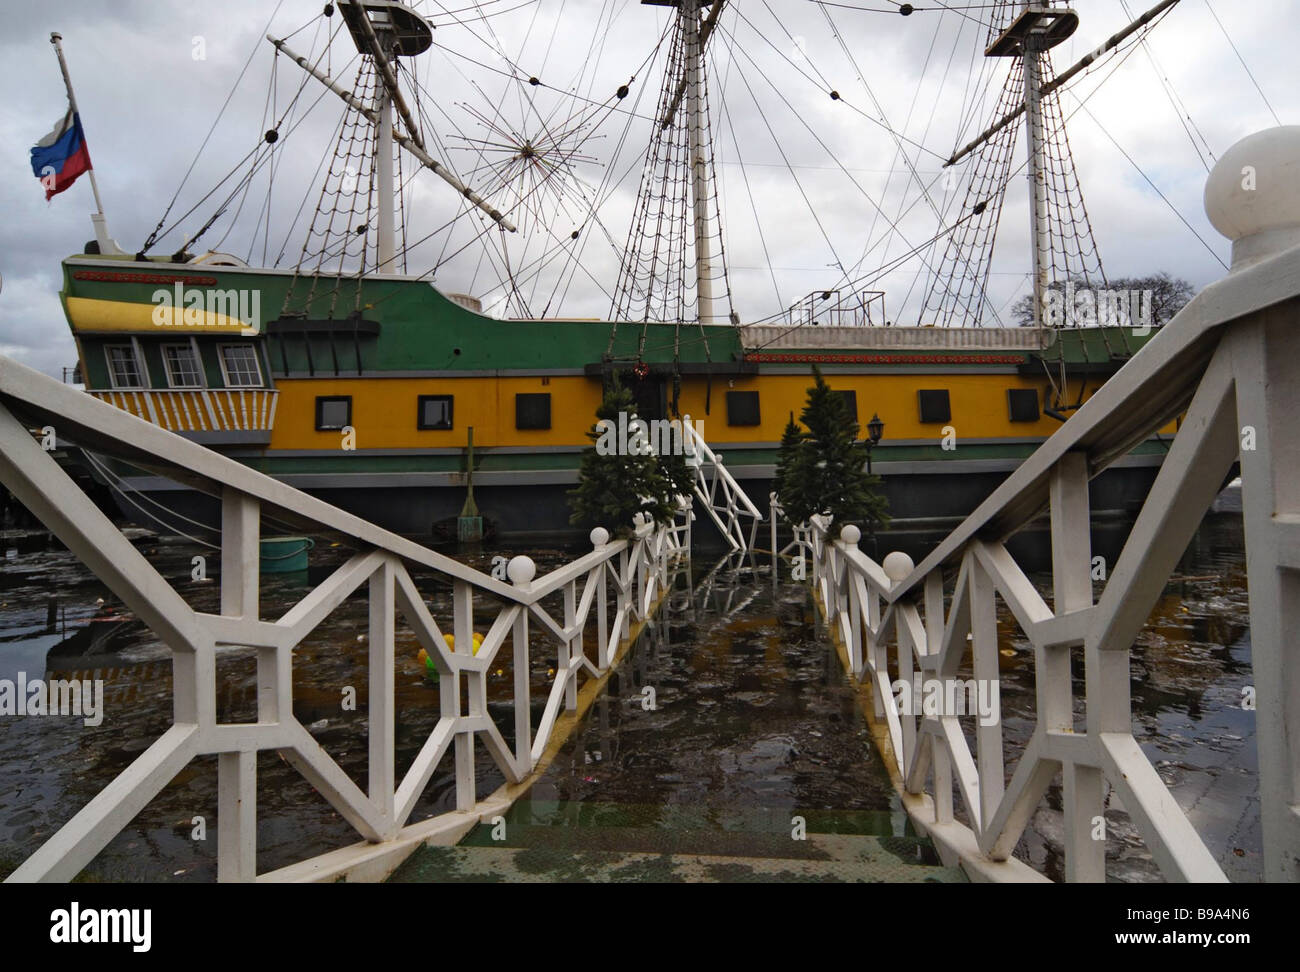 The restaurant ship Flagman is stranded on its Neva River moorage during an inundation in St Petersburg - Stock Image